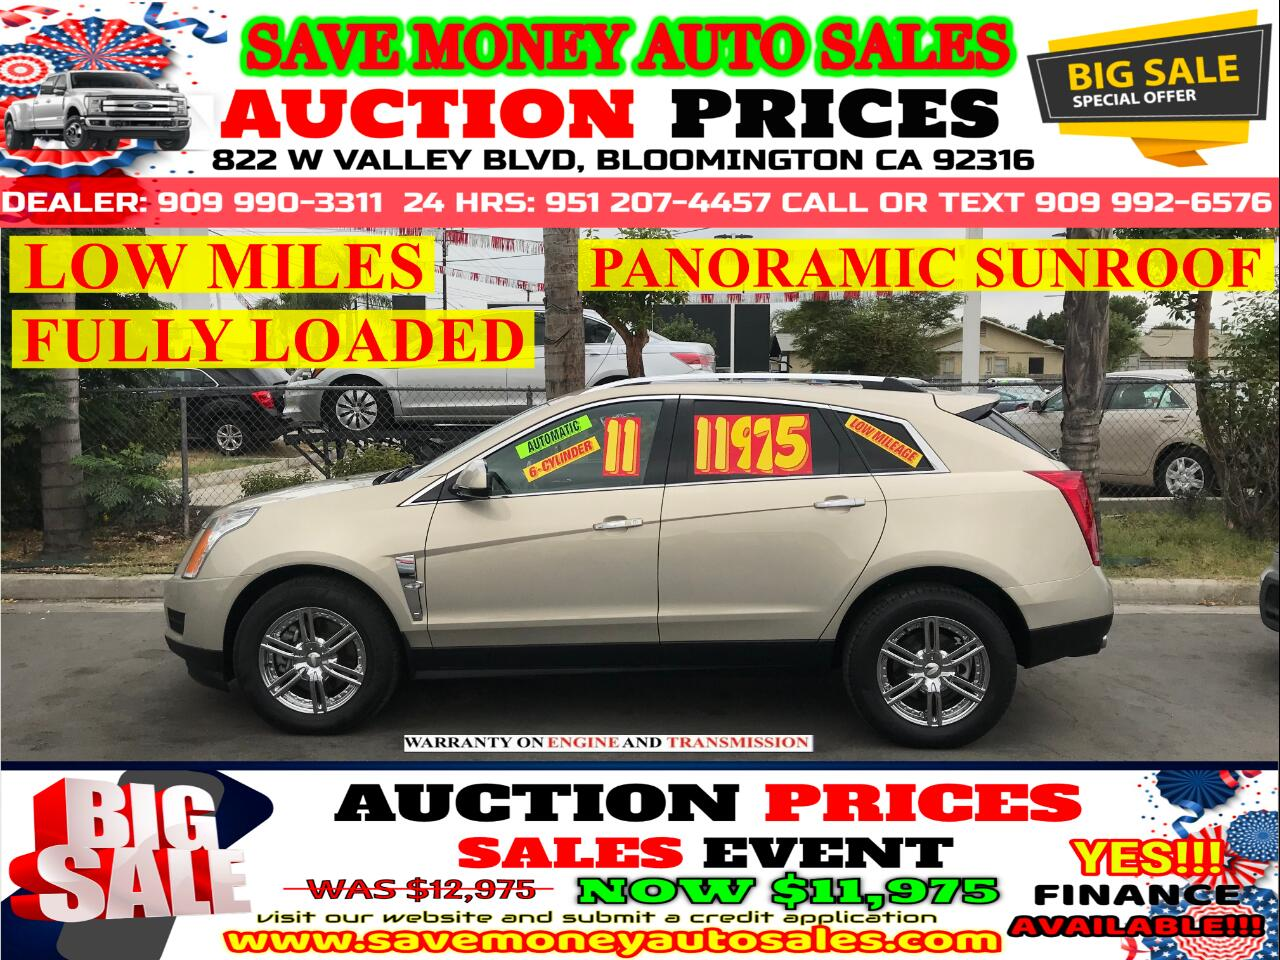 2011 Cadillac SRX LUXURY> 6 CYLINDER> LOW MILES> FULLY LOADED